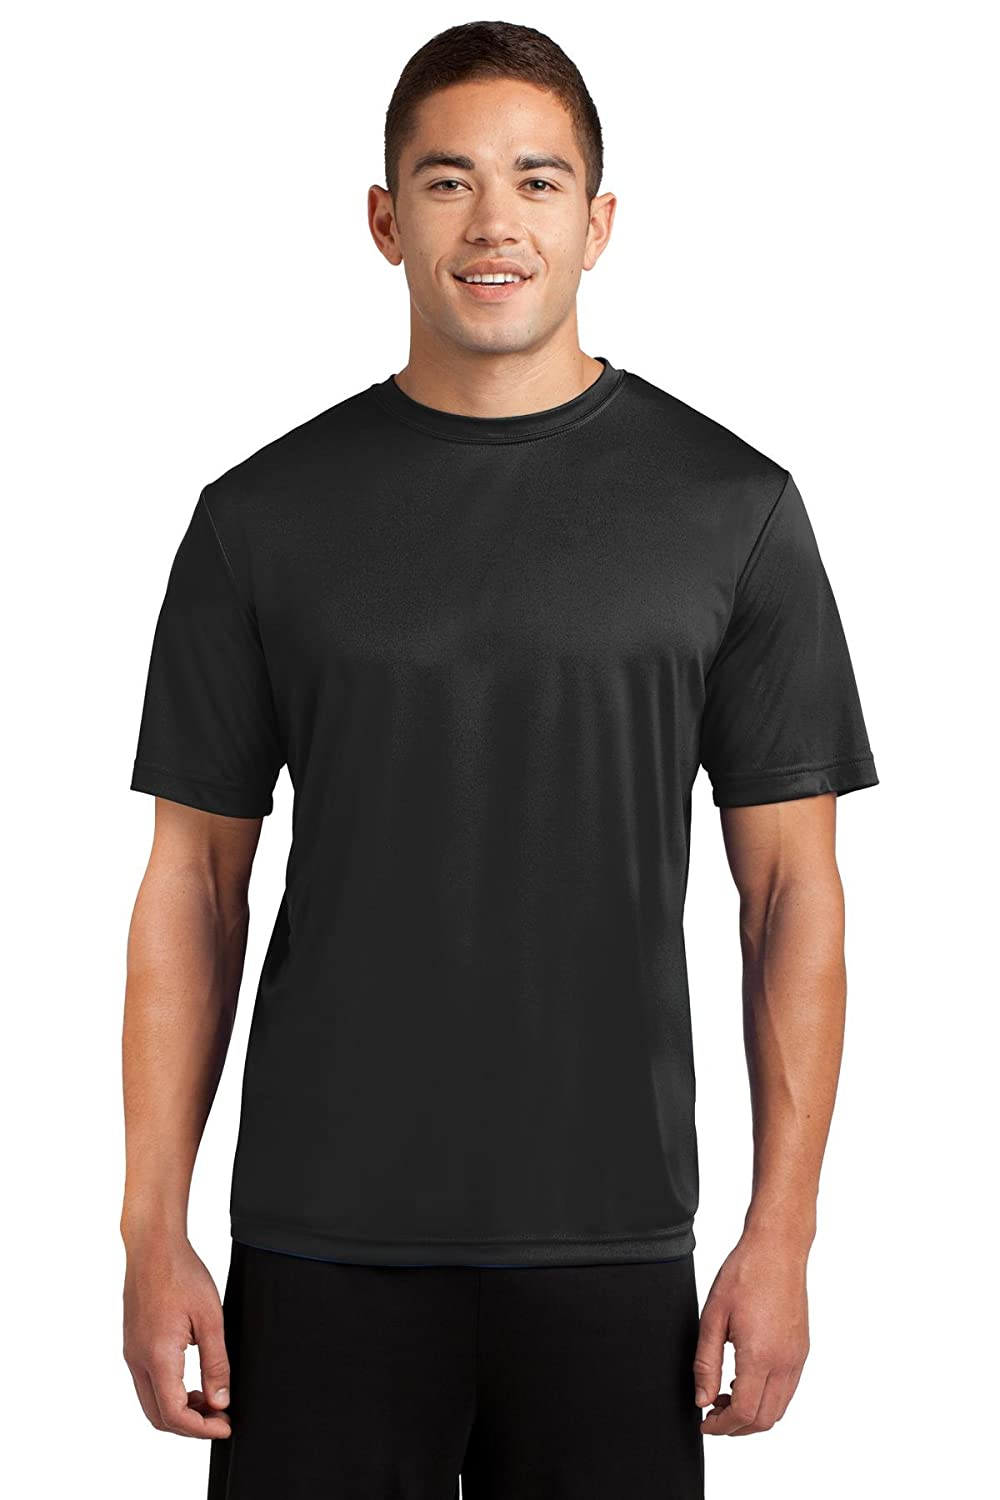 1a2554f0eb6 Dri-Tek Men's Big & Tall Short Sleeve Moisture Wicking Athletic T-Shirt |  Amazon.com